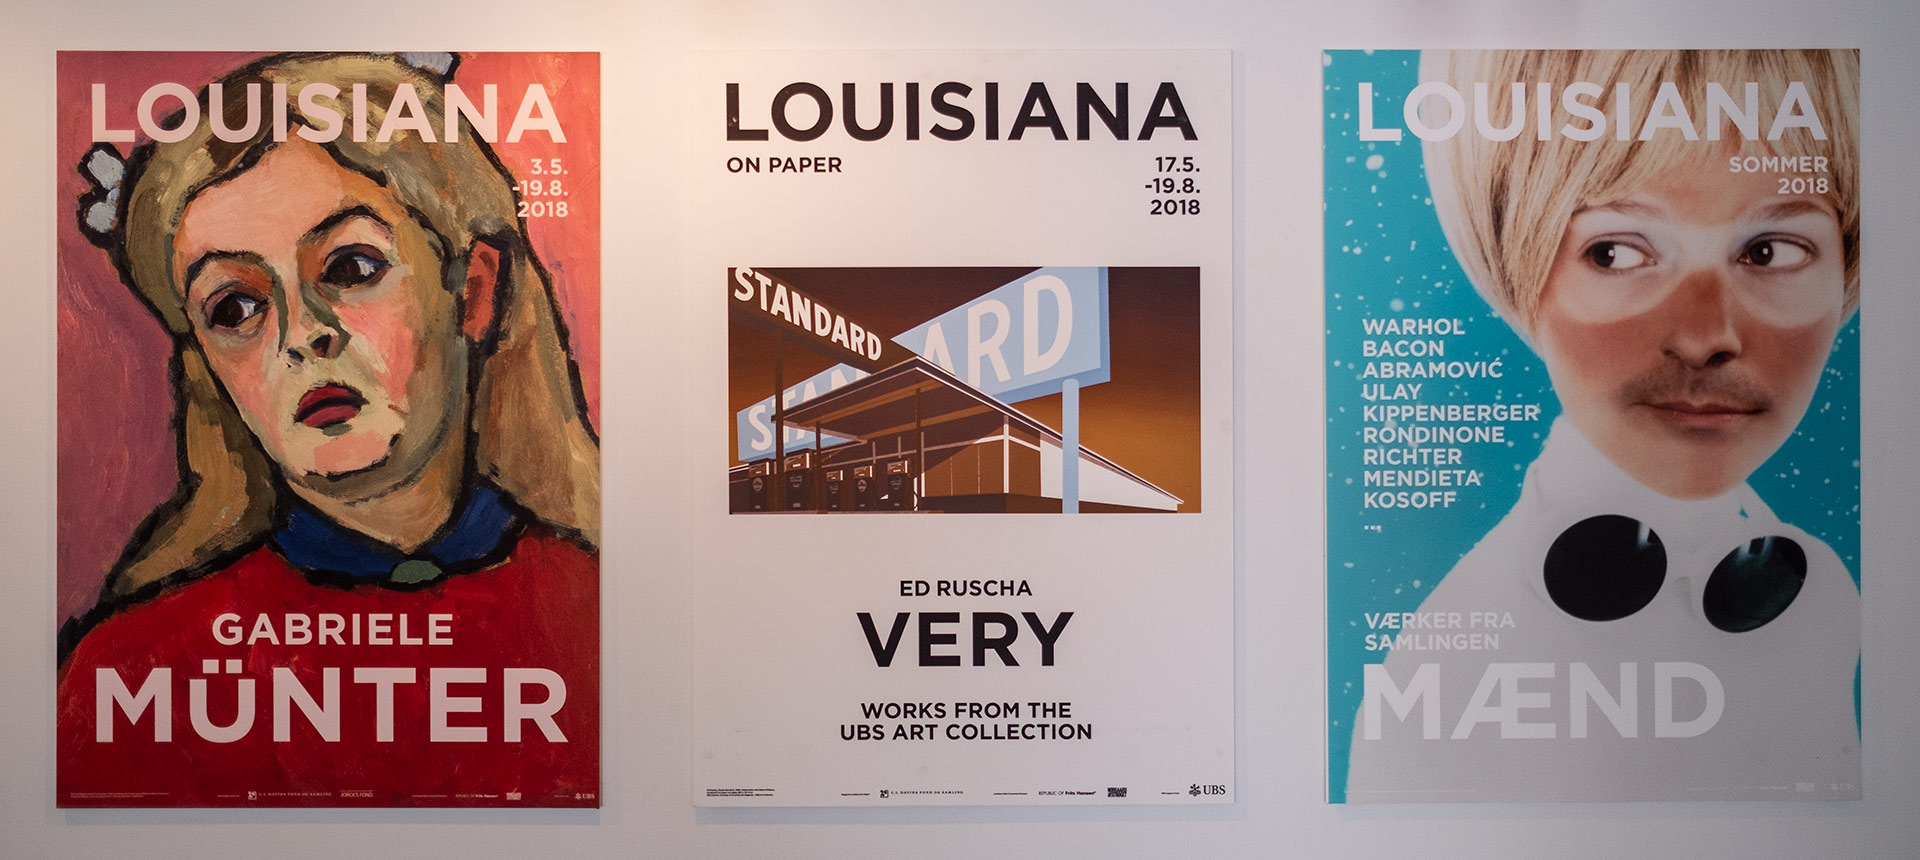 En liten roadtrip till Louisiana museum of modern art | © Janne A